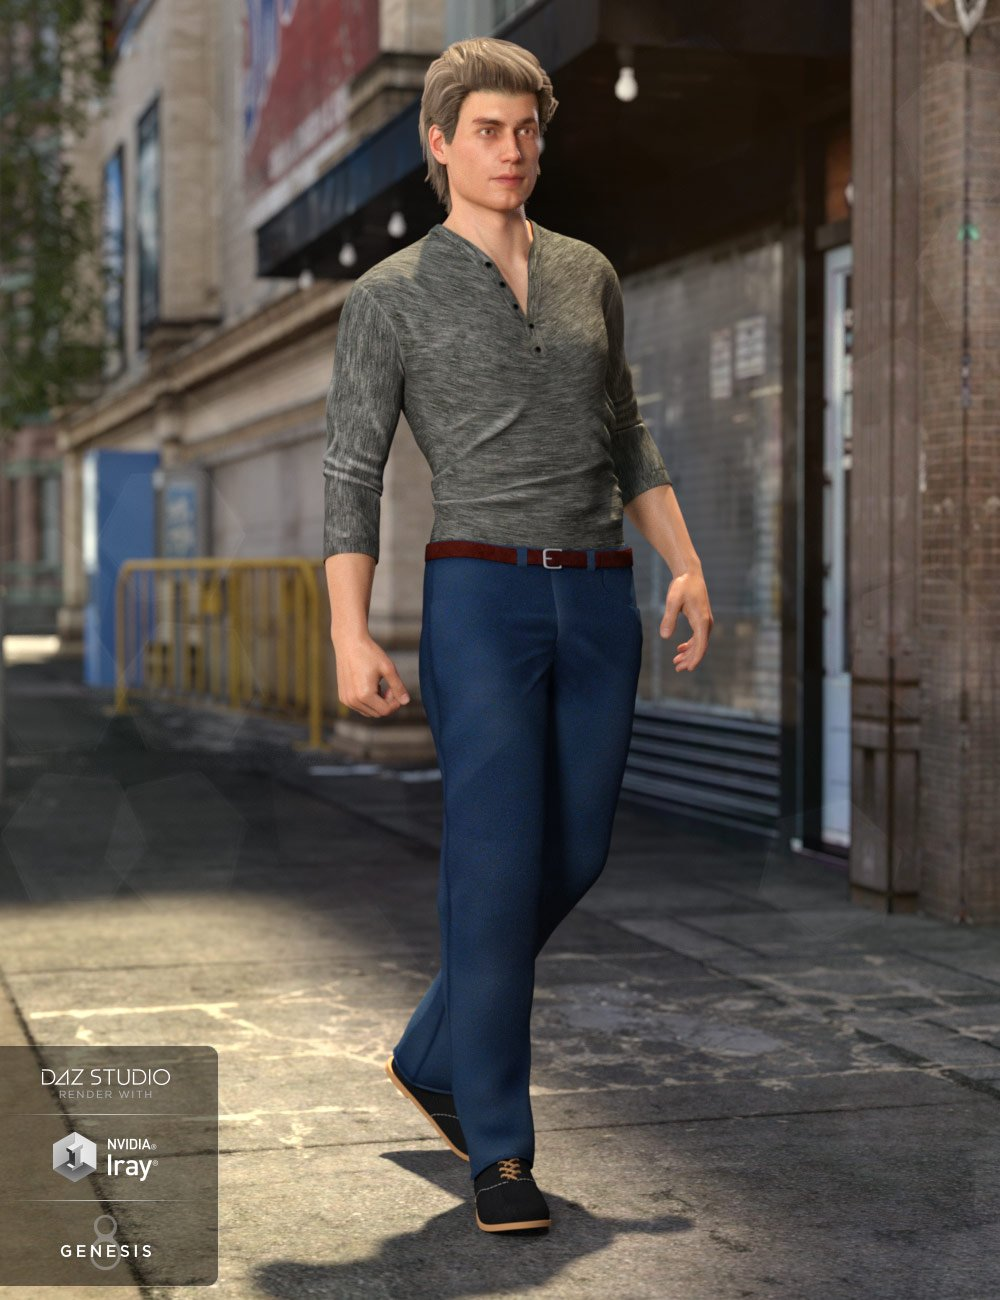 Henley Shirt and Jeans Outfit for Genesis 8 Male(s) by: Mely3DNikisatez, 3D Models by Daz 3D